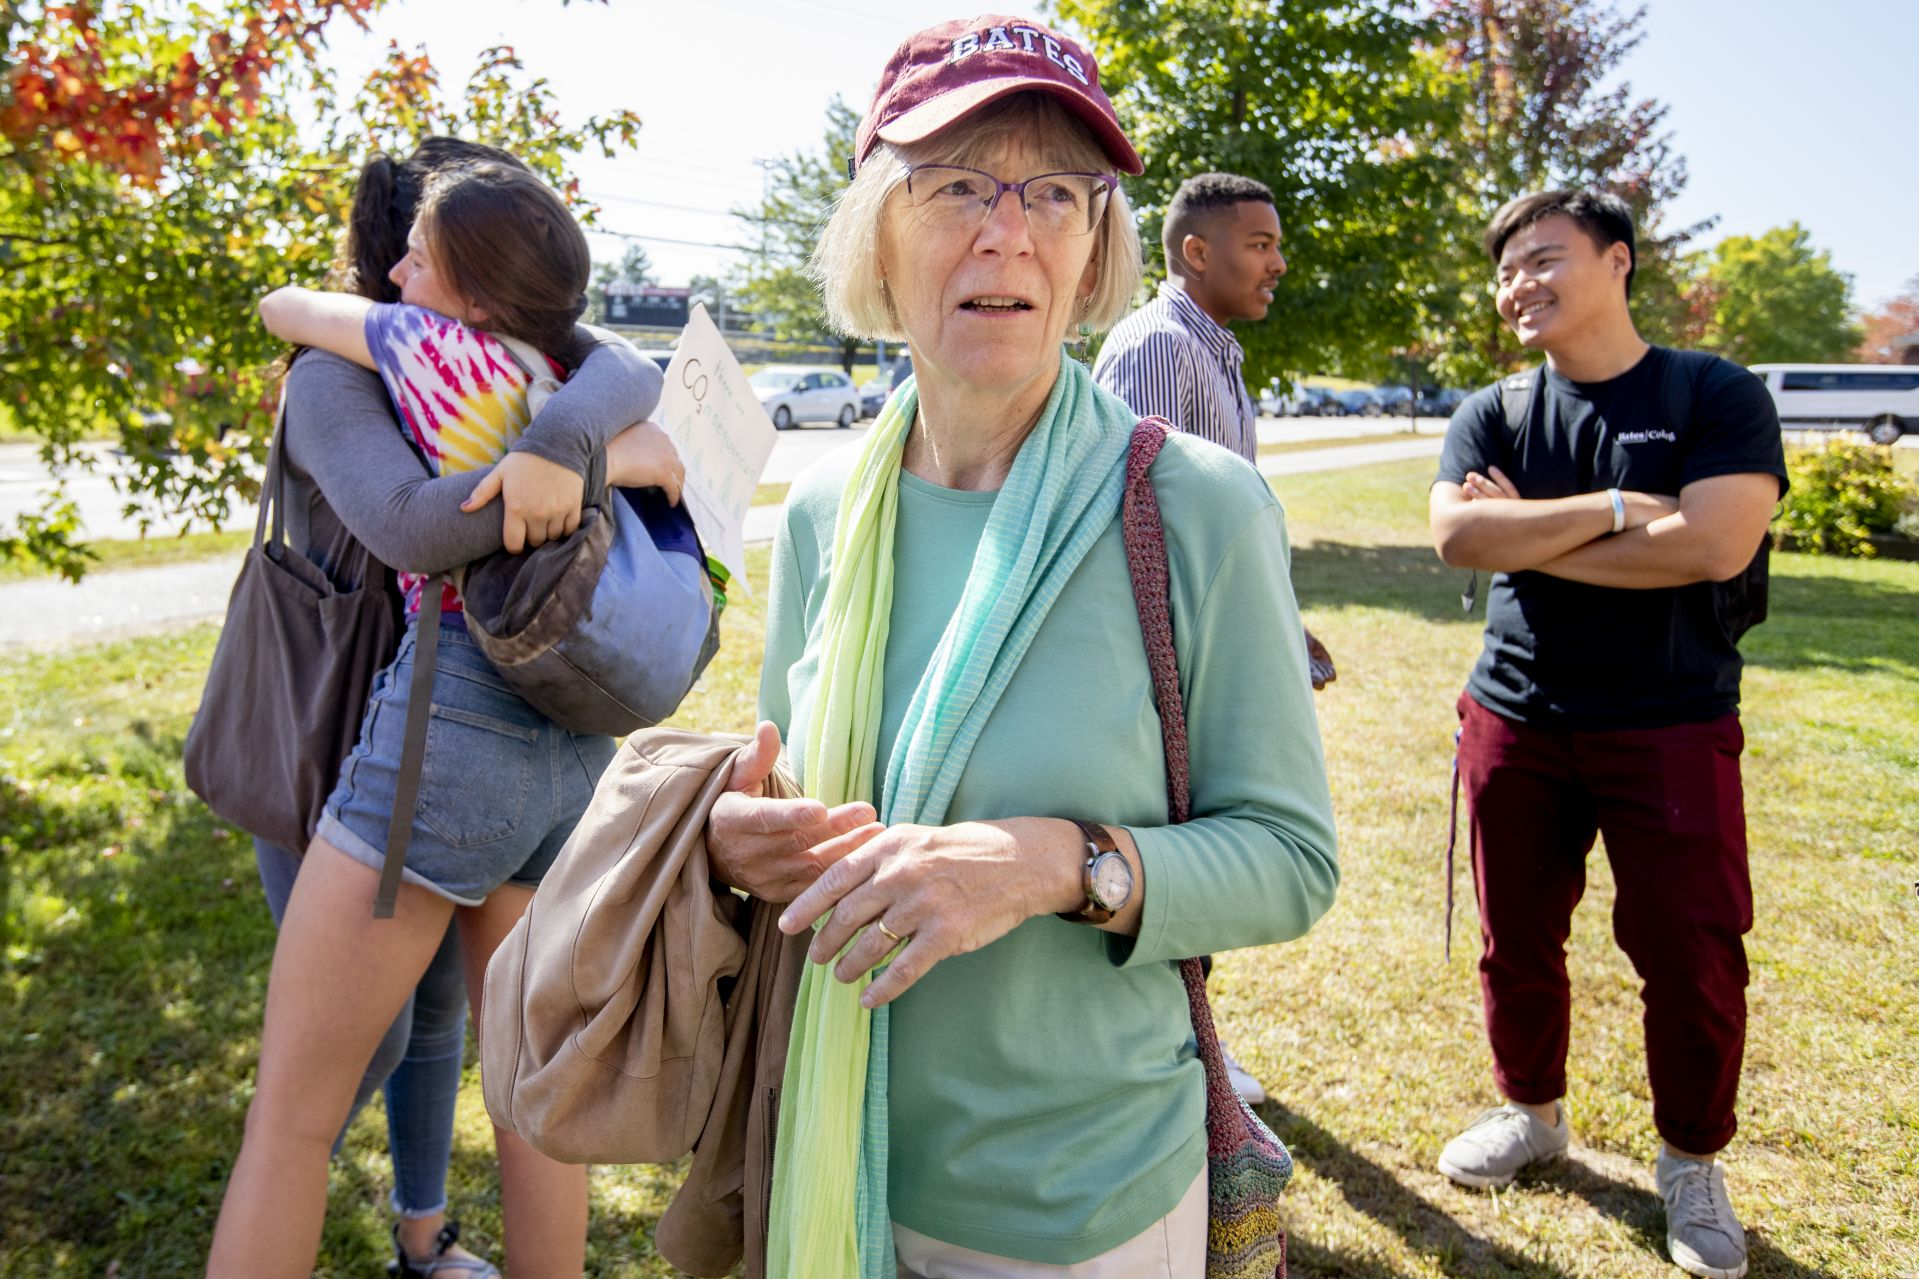 With the student bus nearing capacity, Costlow waits to see if she needs to drive students to the Climate Strike in Portland on Sept. 20. (Phyllis Graber Jensen/Bates College)